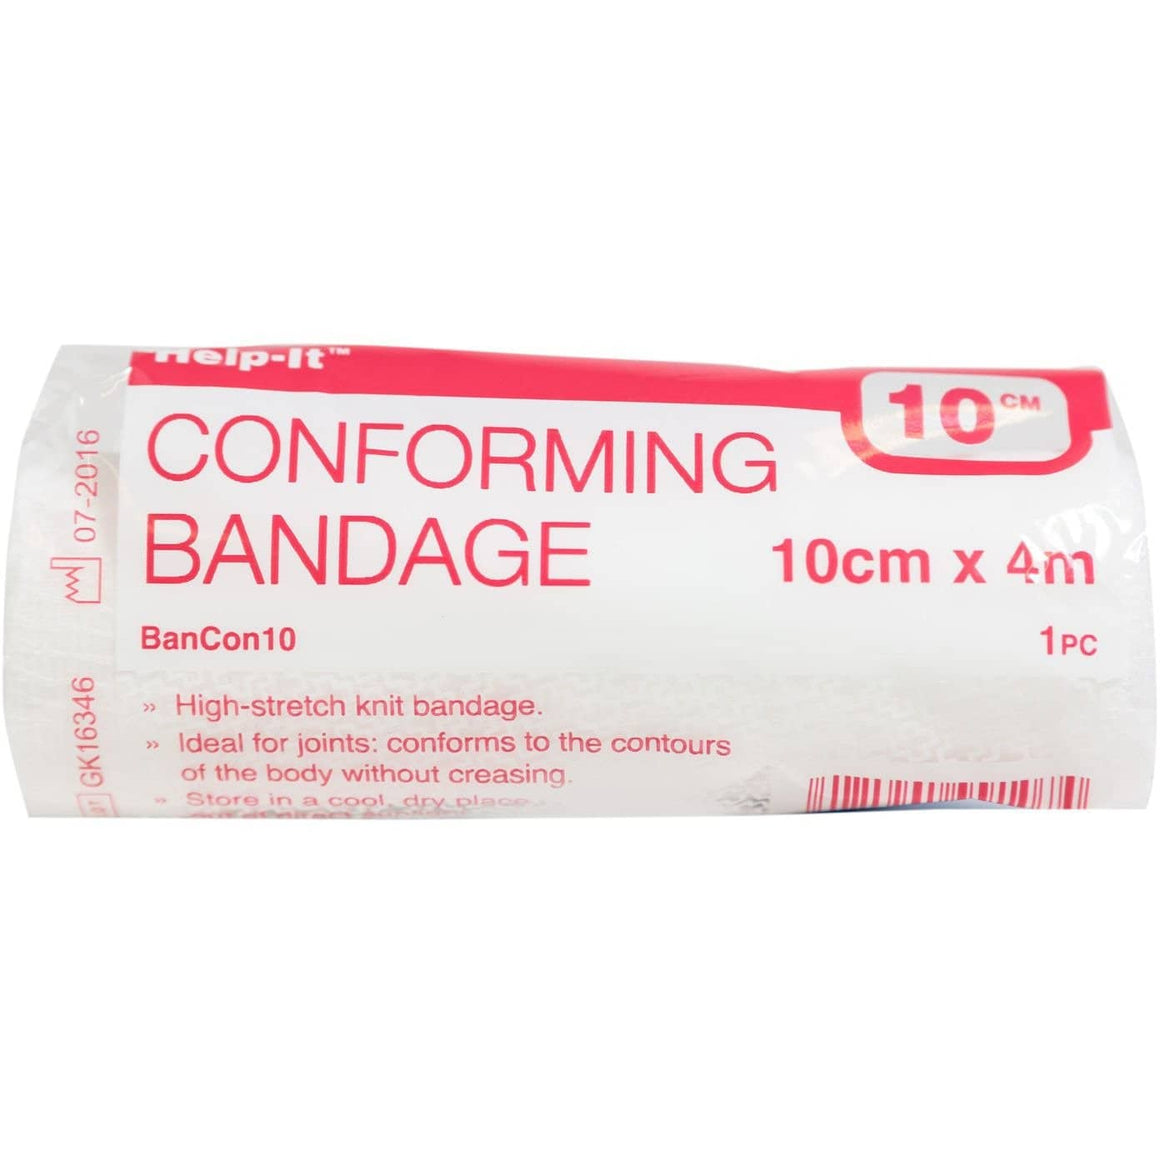 Help-It Conforming Bandage